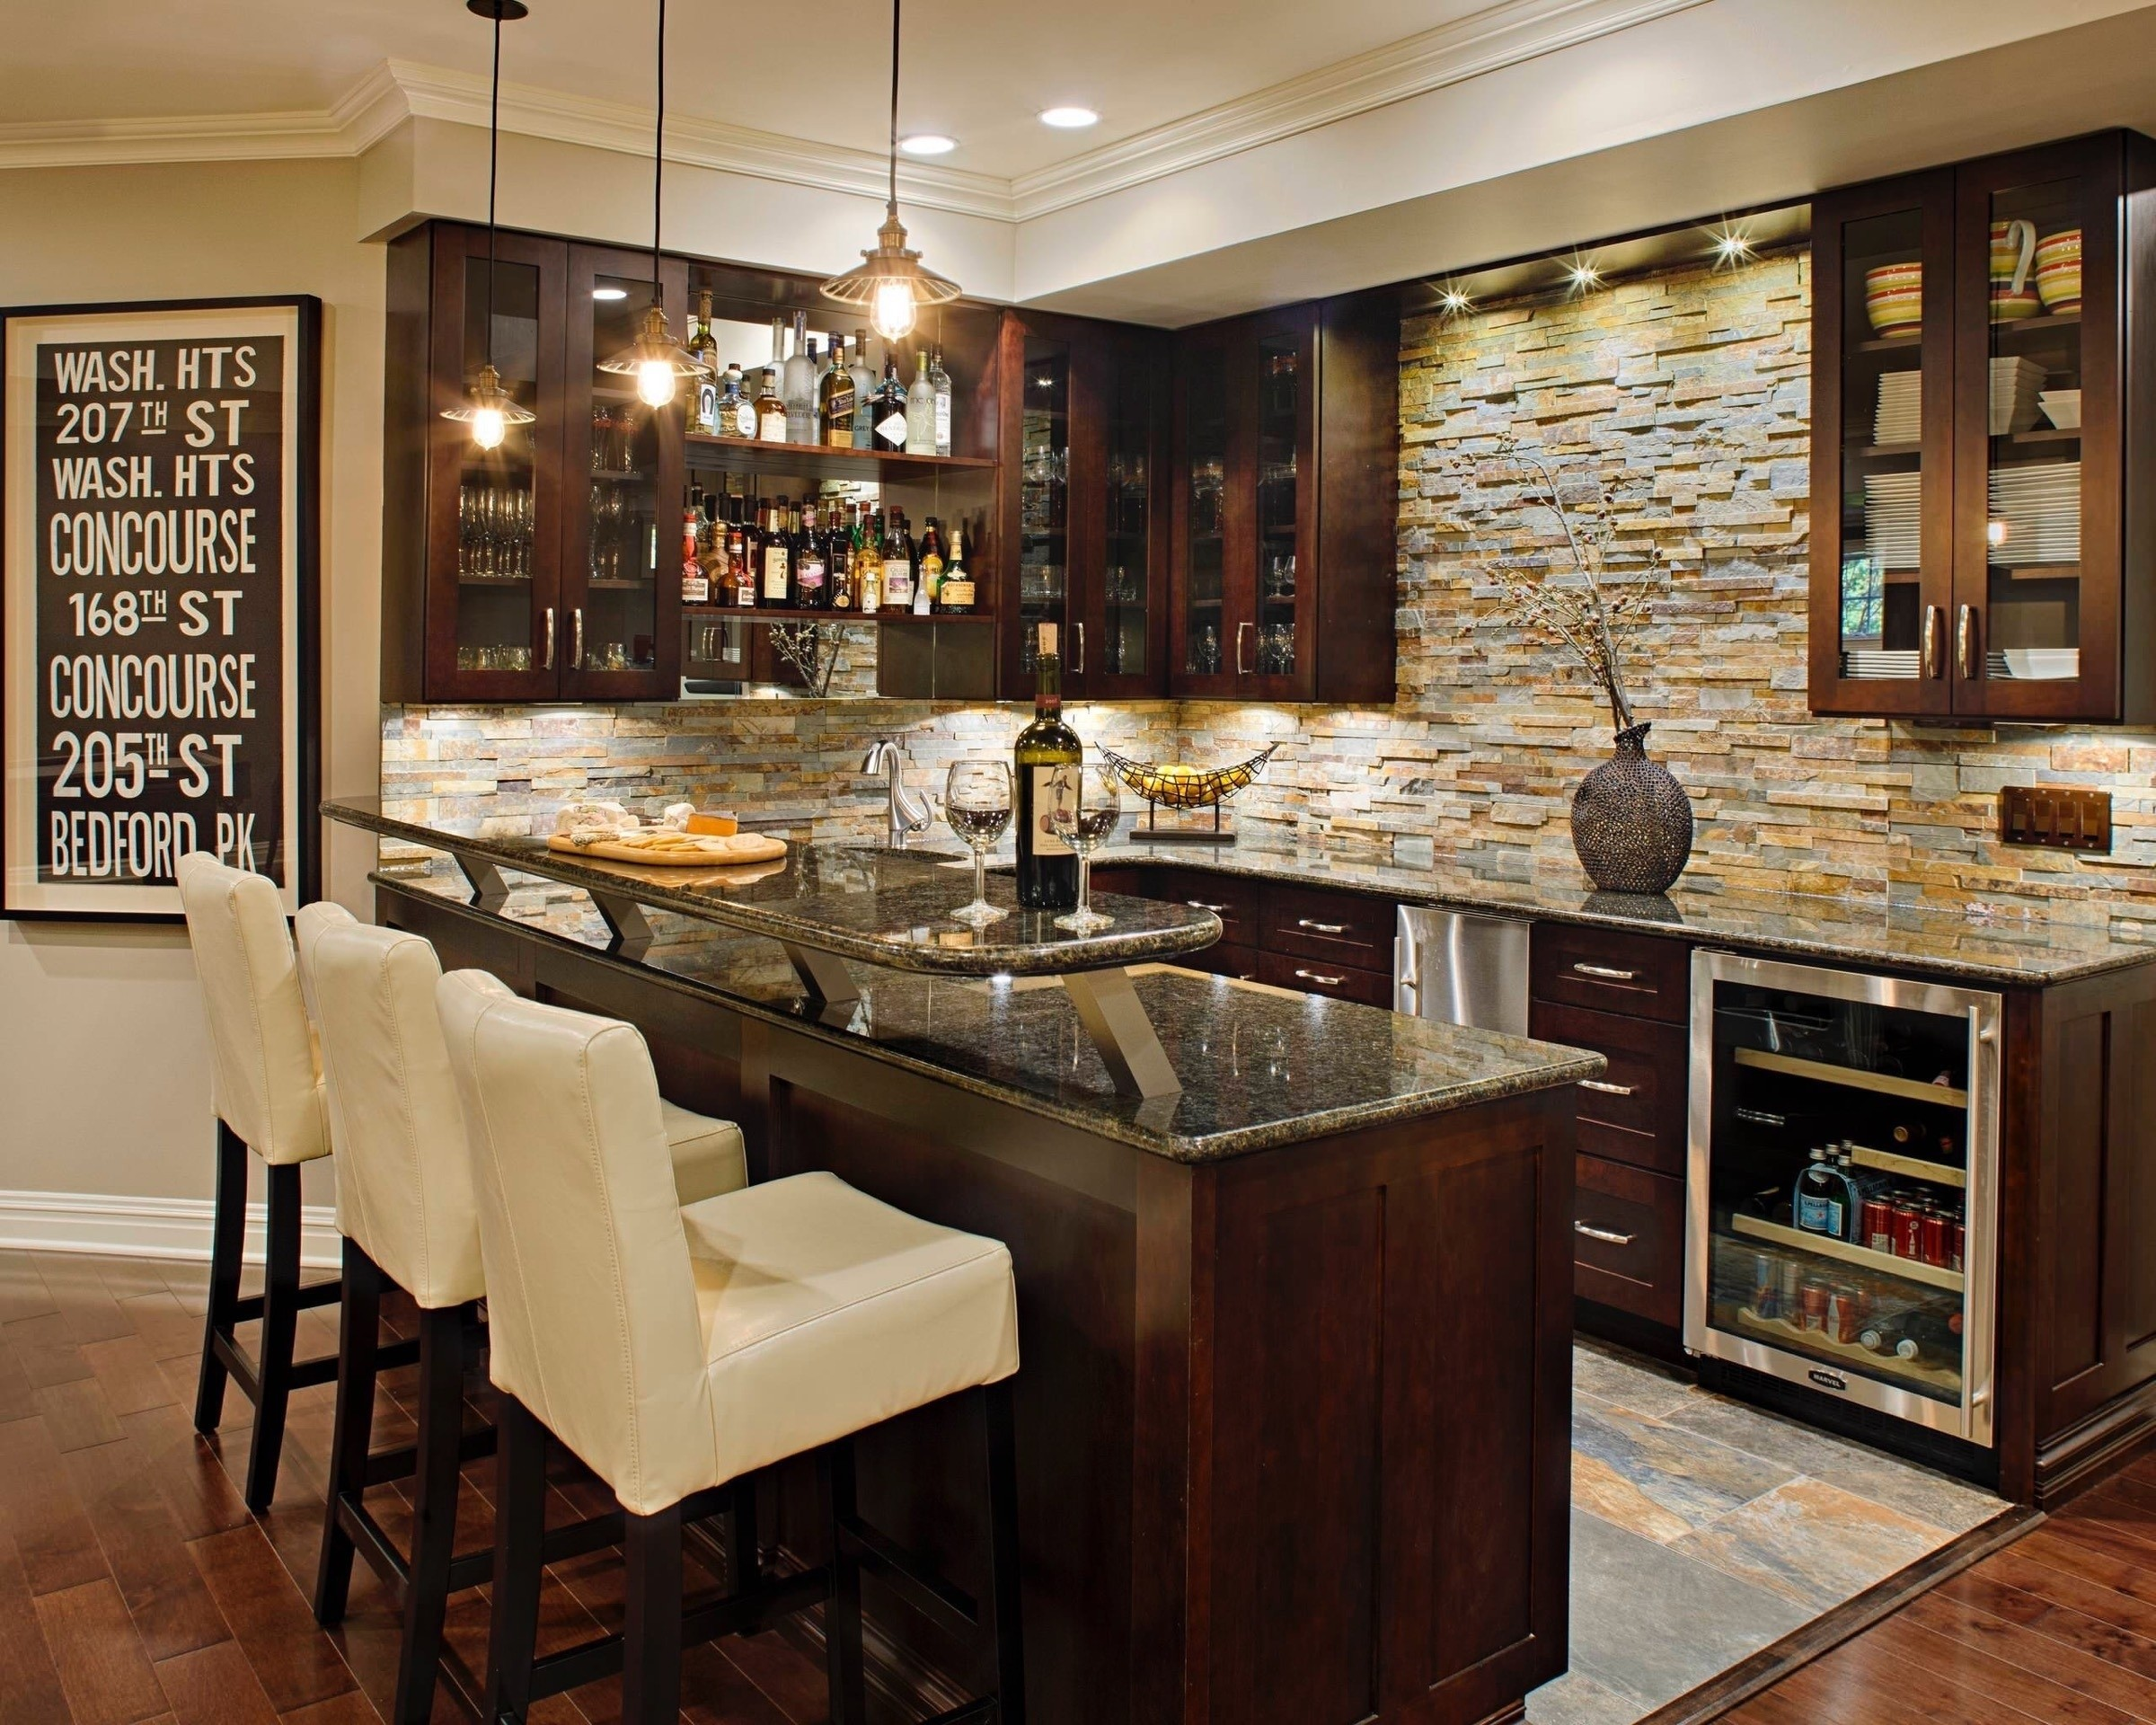 Wet Bar With Sink And Refrigerator